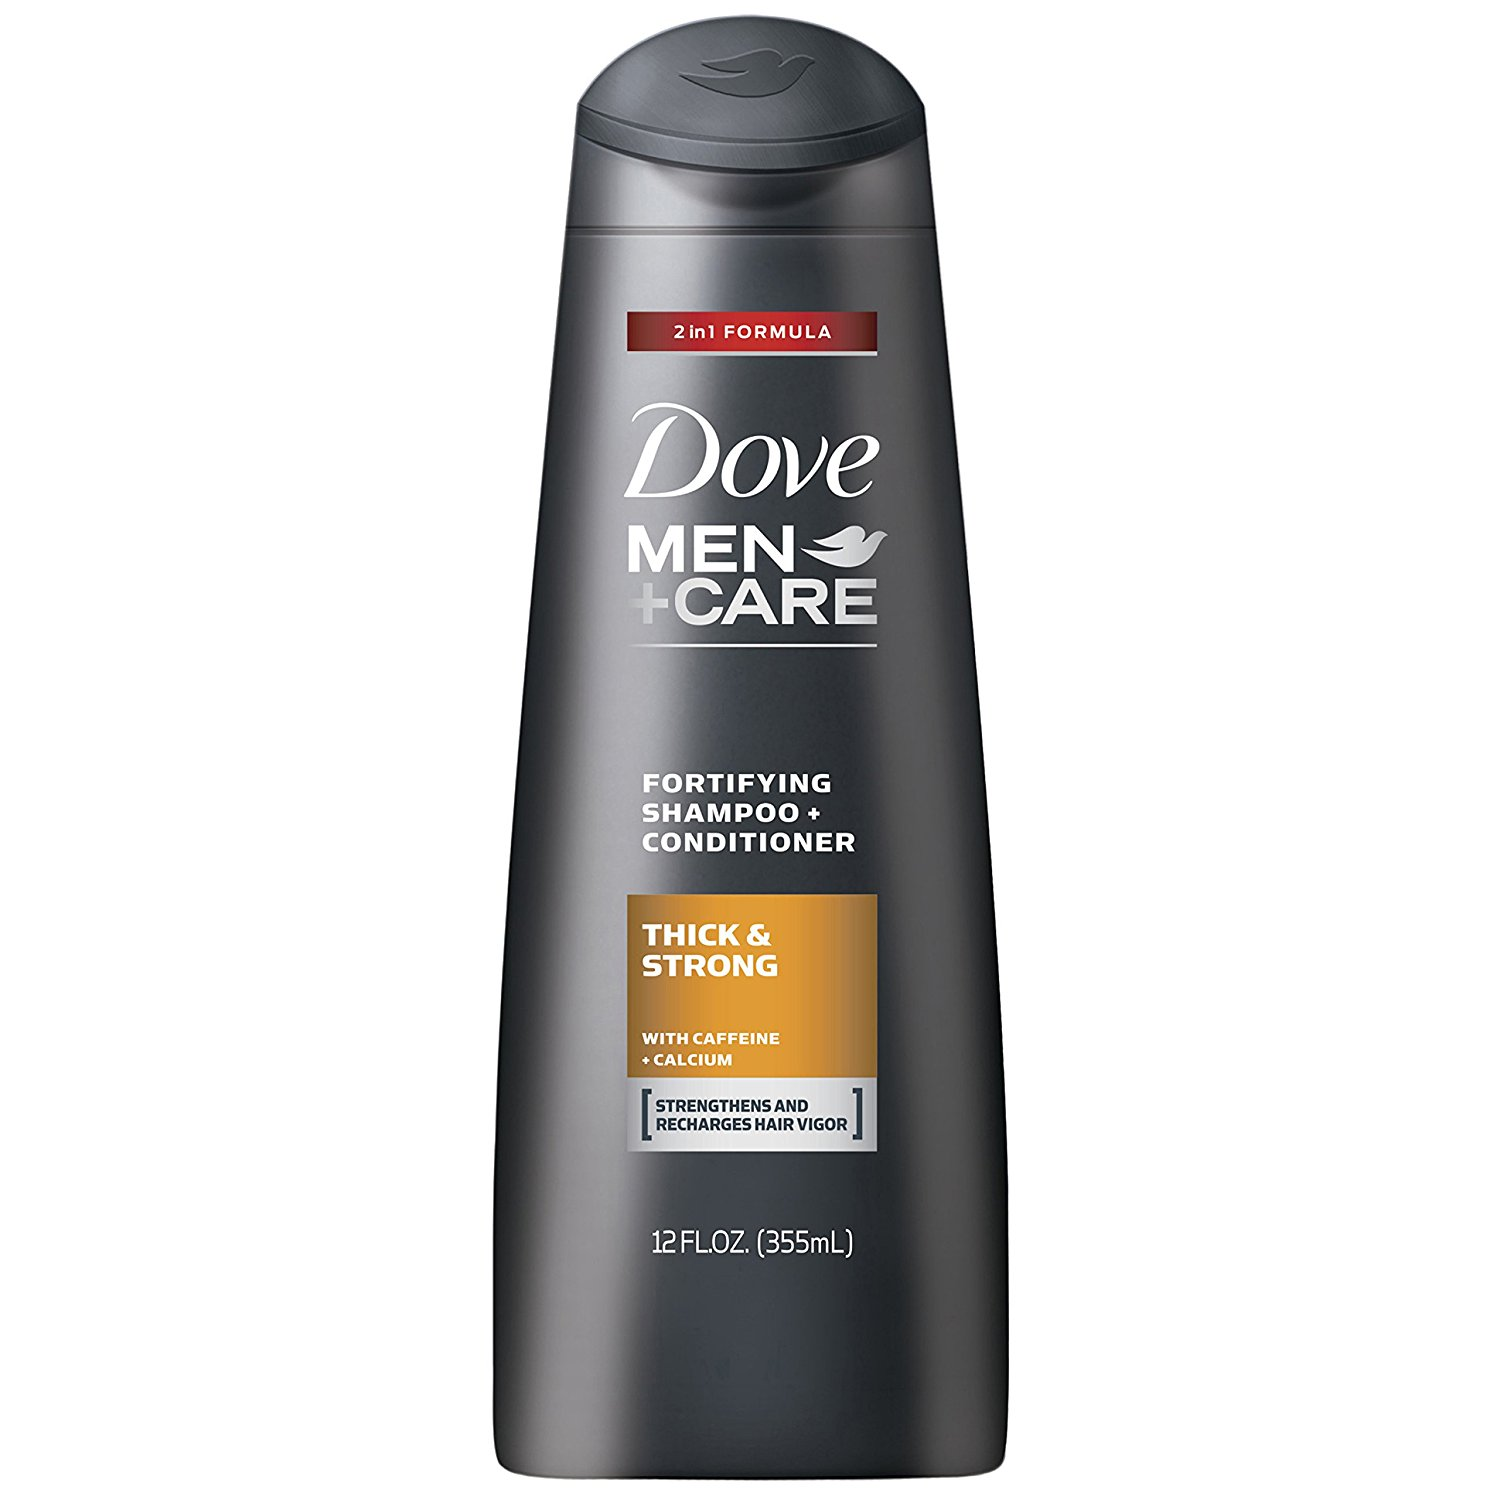 Dove Men+Care Thickening Fortifying Shampoo Image